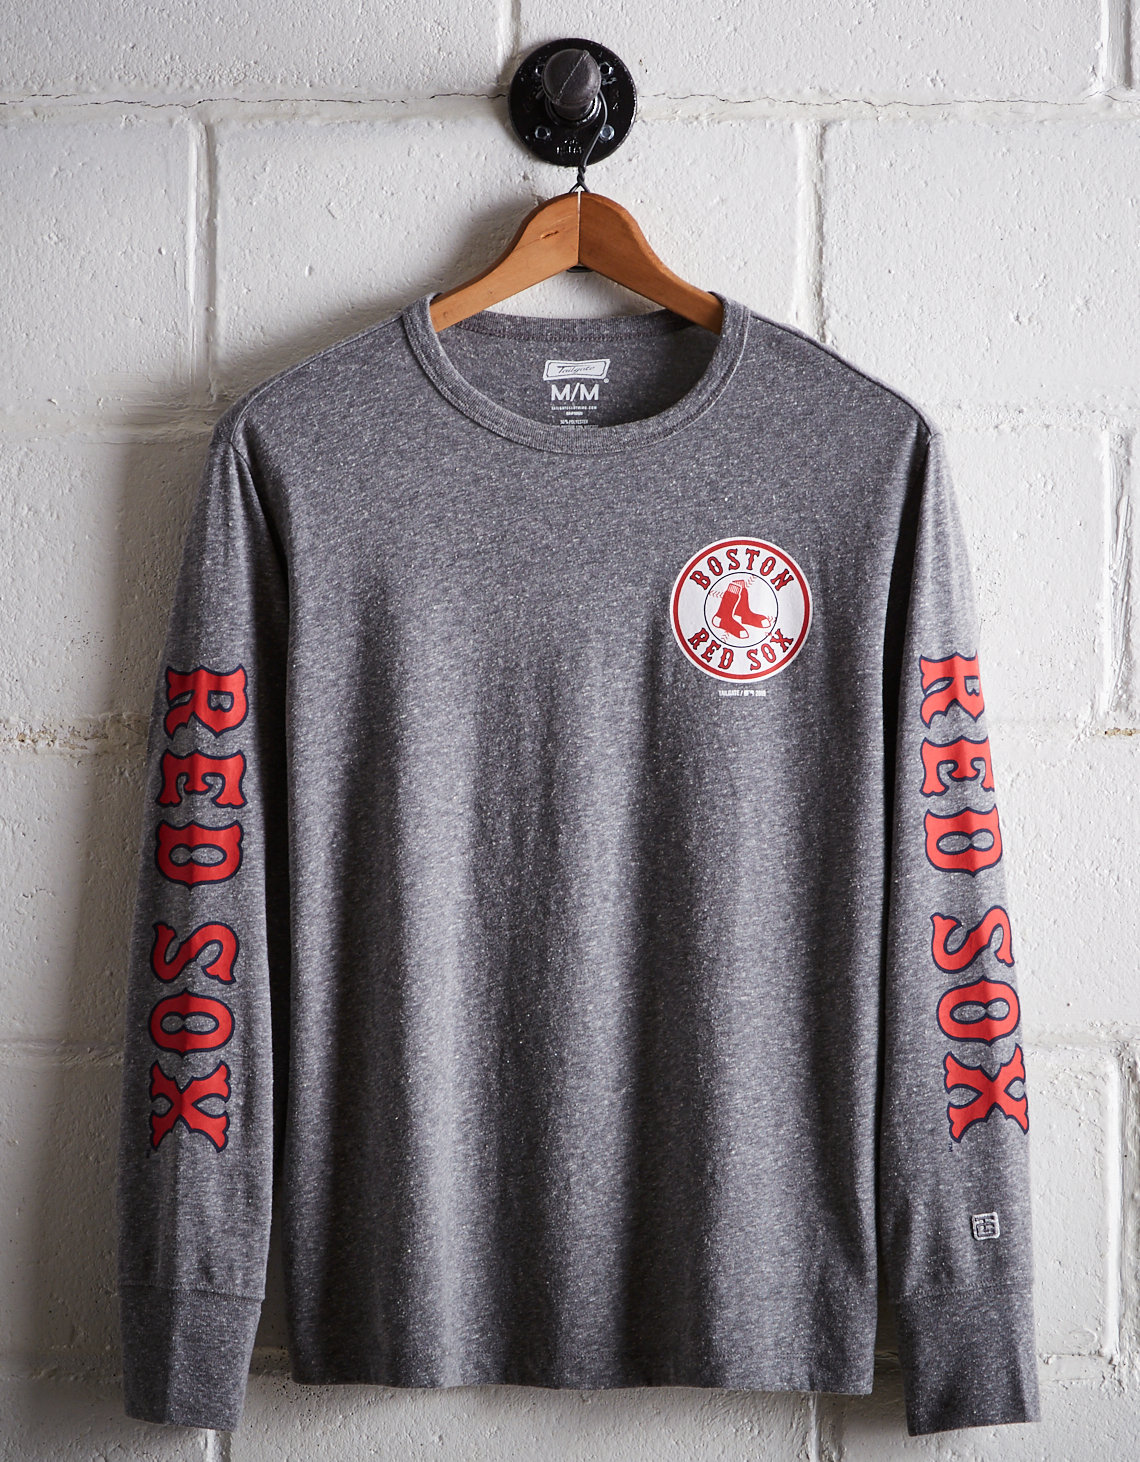 9654a32cfdf91 Tailgate Men s Boston Red Sox Long Sleeve Tee. Placeholder image. Product  Image